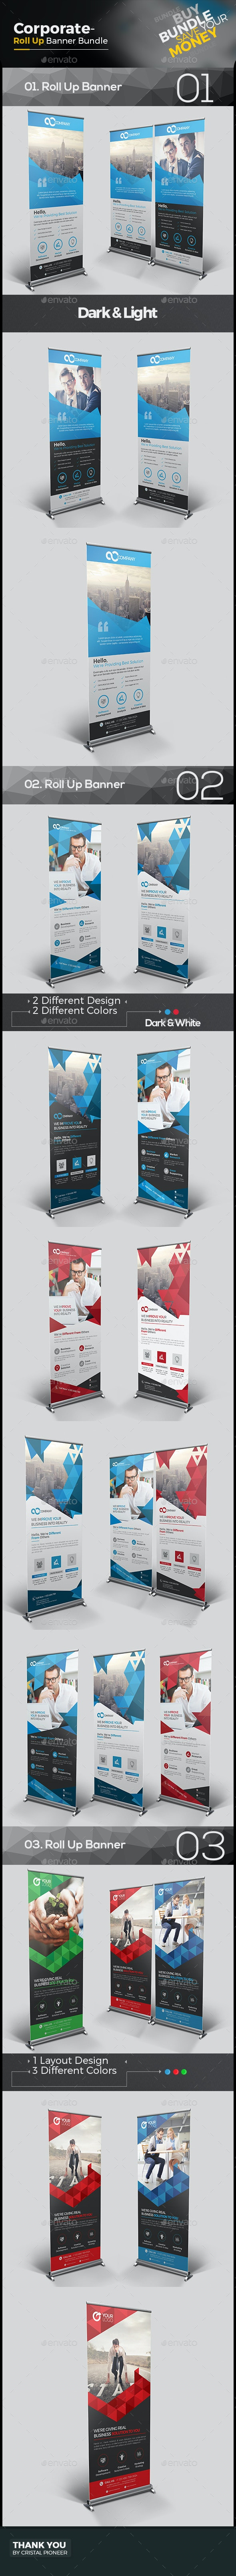 Corporate Roll Up Banner Bundle 3 in 1 - Signage Print Templates